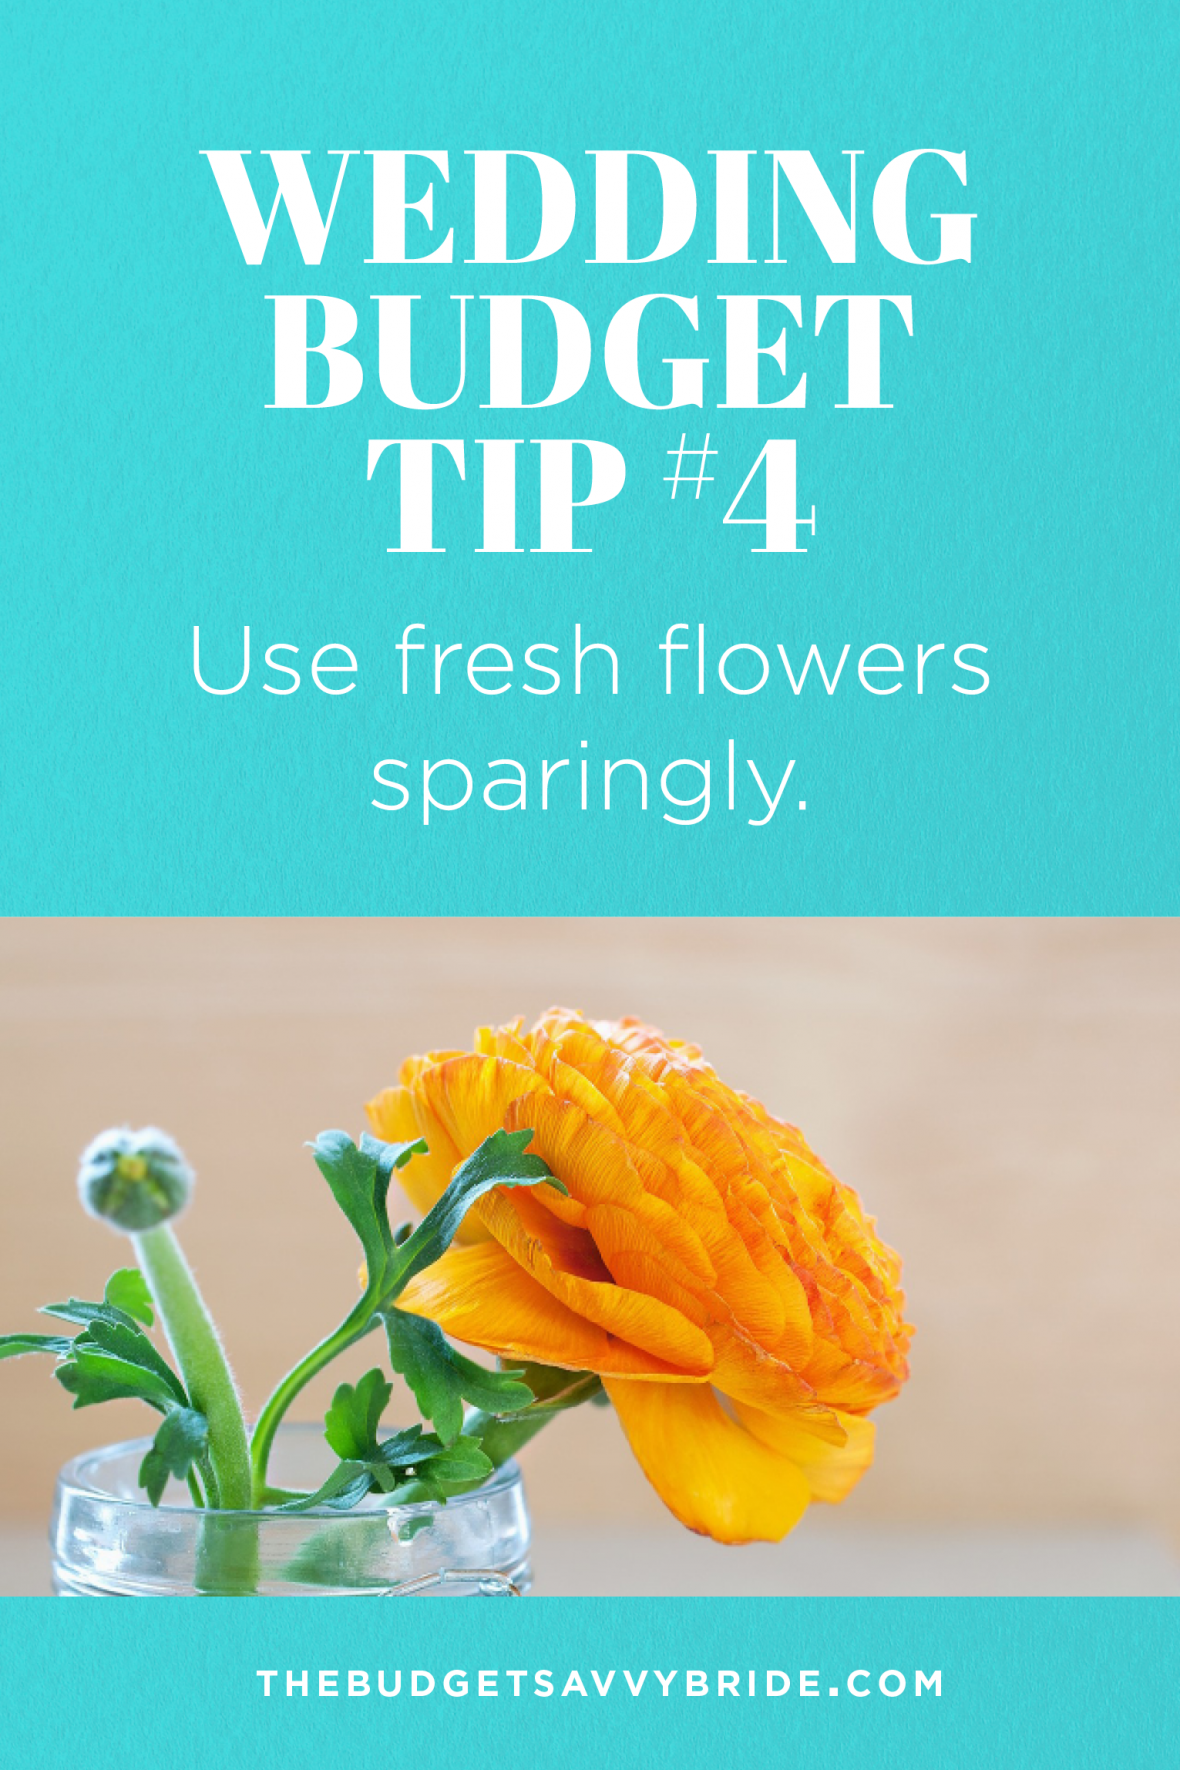 Wedding budget tips the budget savvy bride wedding budget tip 4 use fresh flowers sparingly junglespirit Gallery